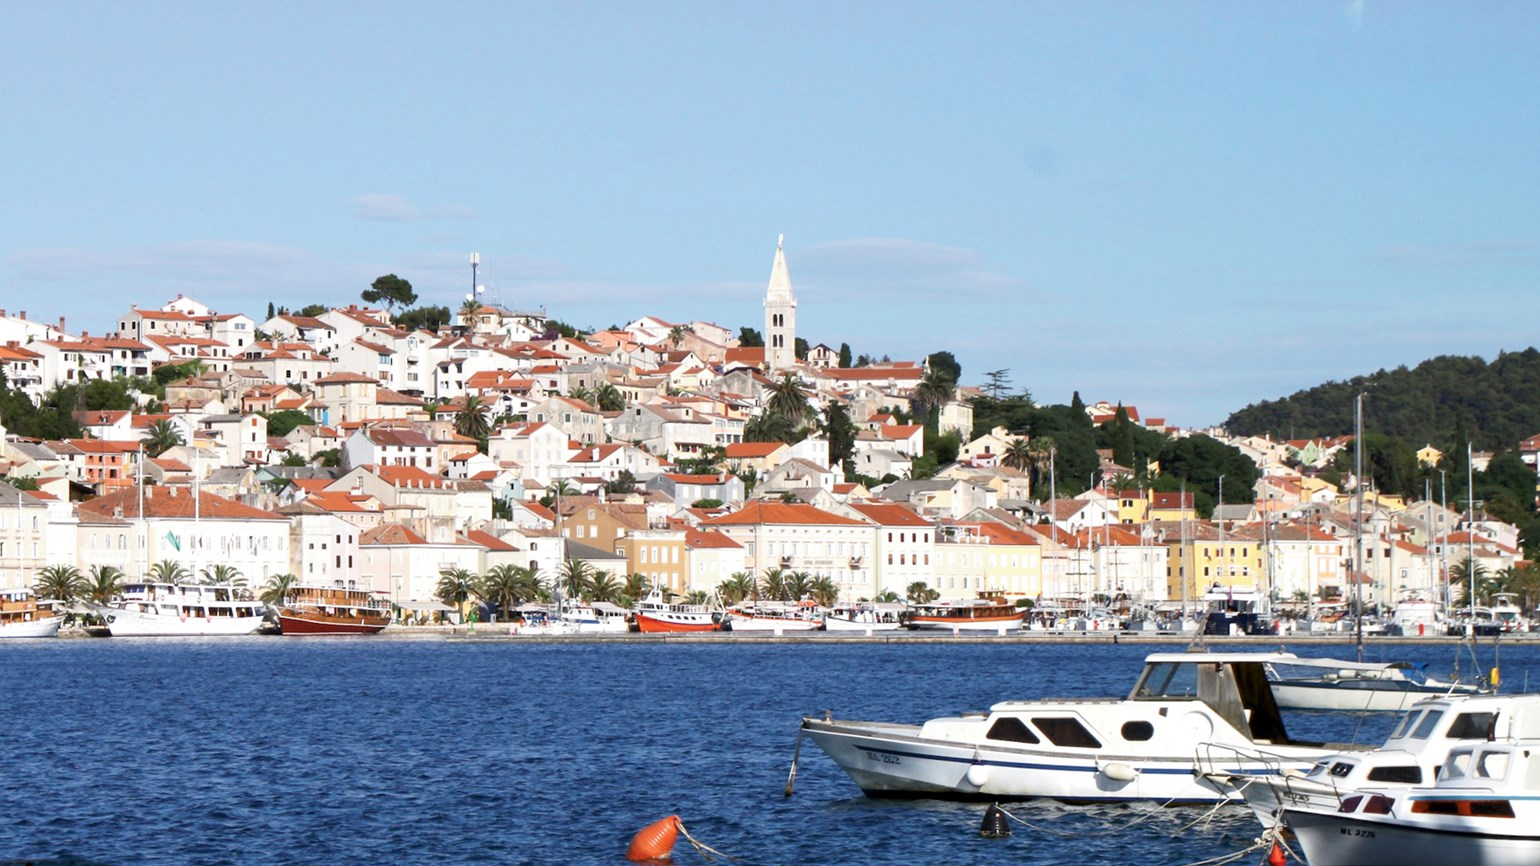 In Croatia, high-end health, wellness